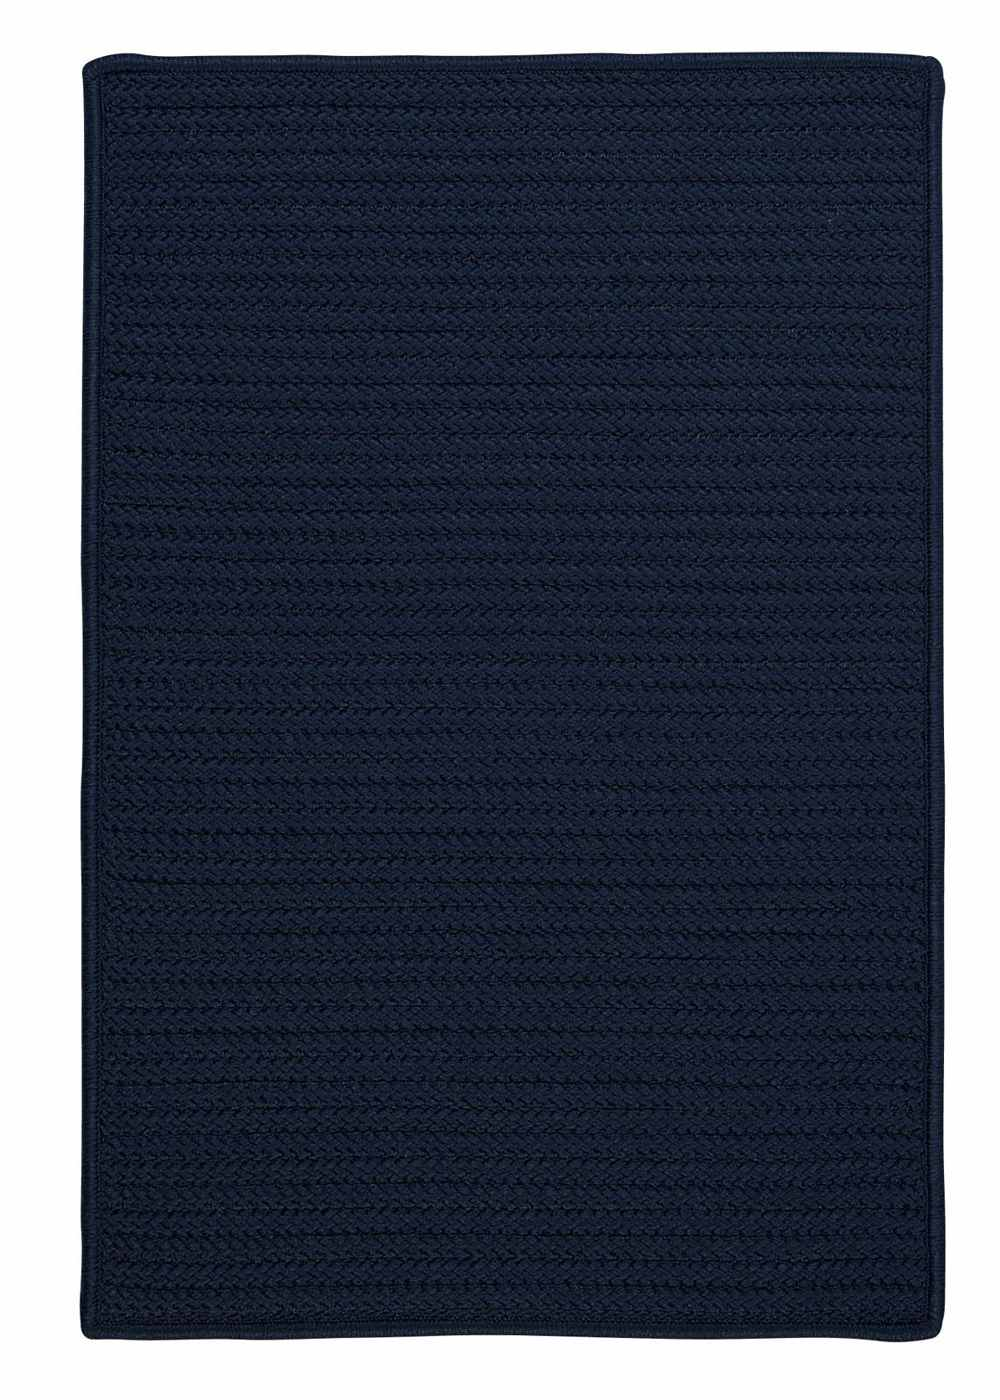 Super Area Rugs 8ft. x 11ft. Indoor/Outdoor Reversible Braided Rug Navy Color (8x11) at Sears.com